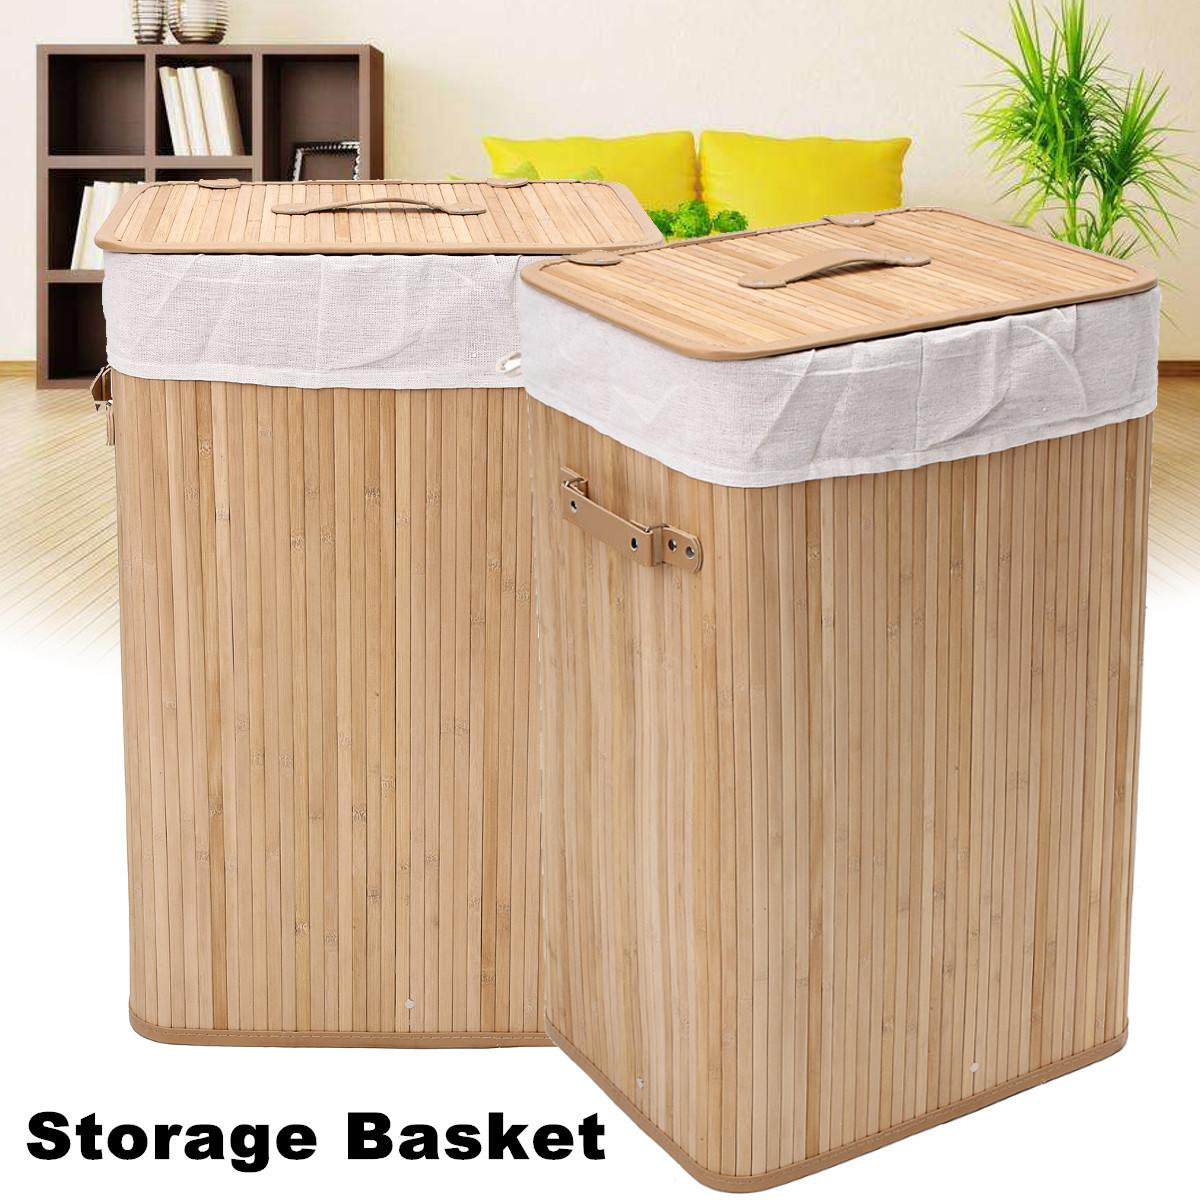 Bamboo Sorter Bin Organizer With Lid Washing Cloth Bin Rangier Lid Laundry Hamper Basket Wicker Clothes Storage Bag